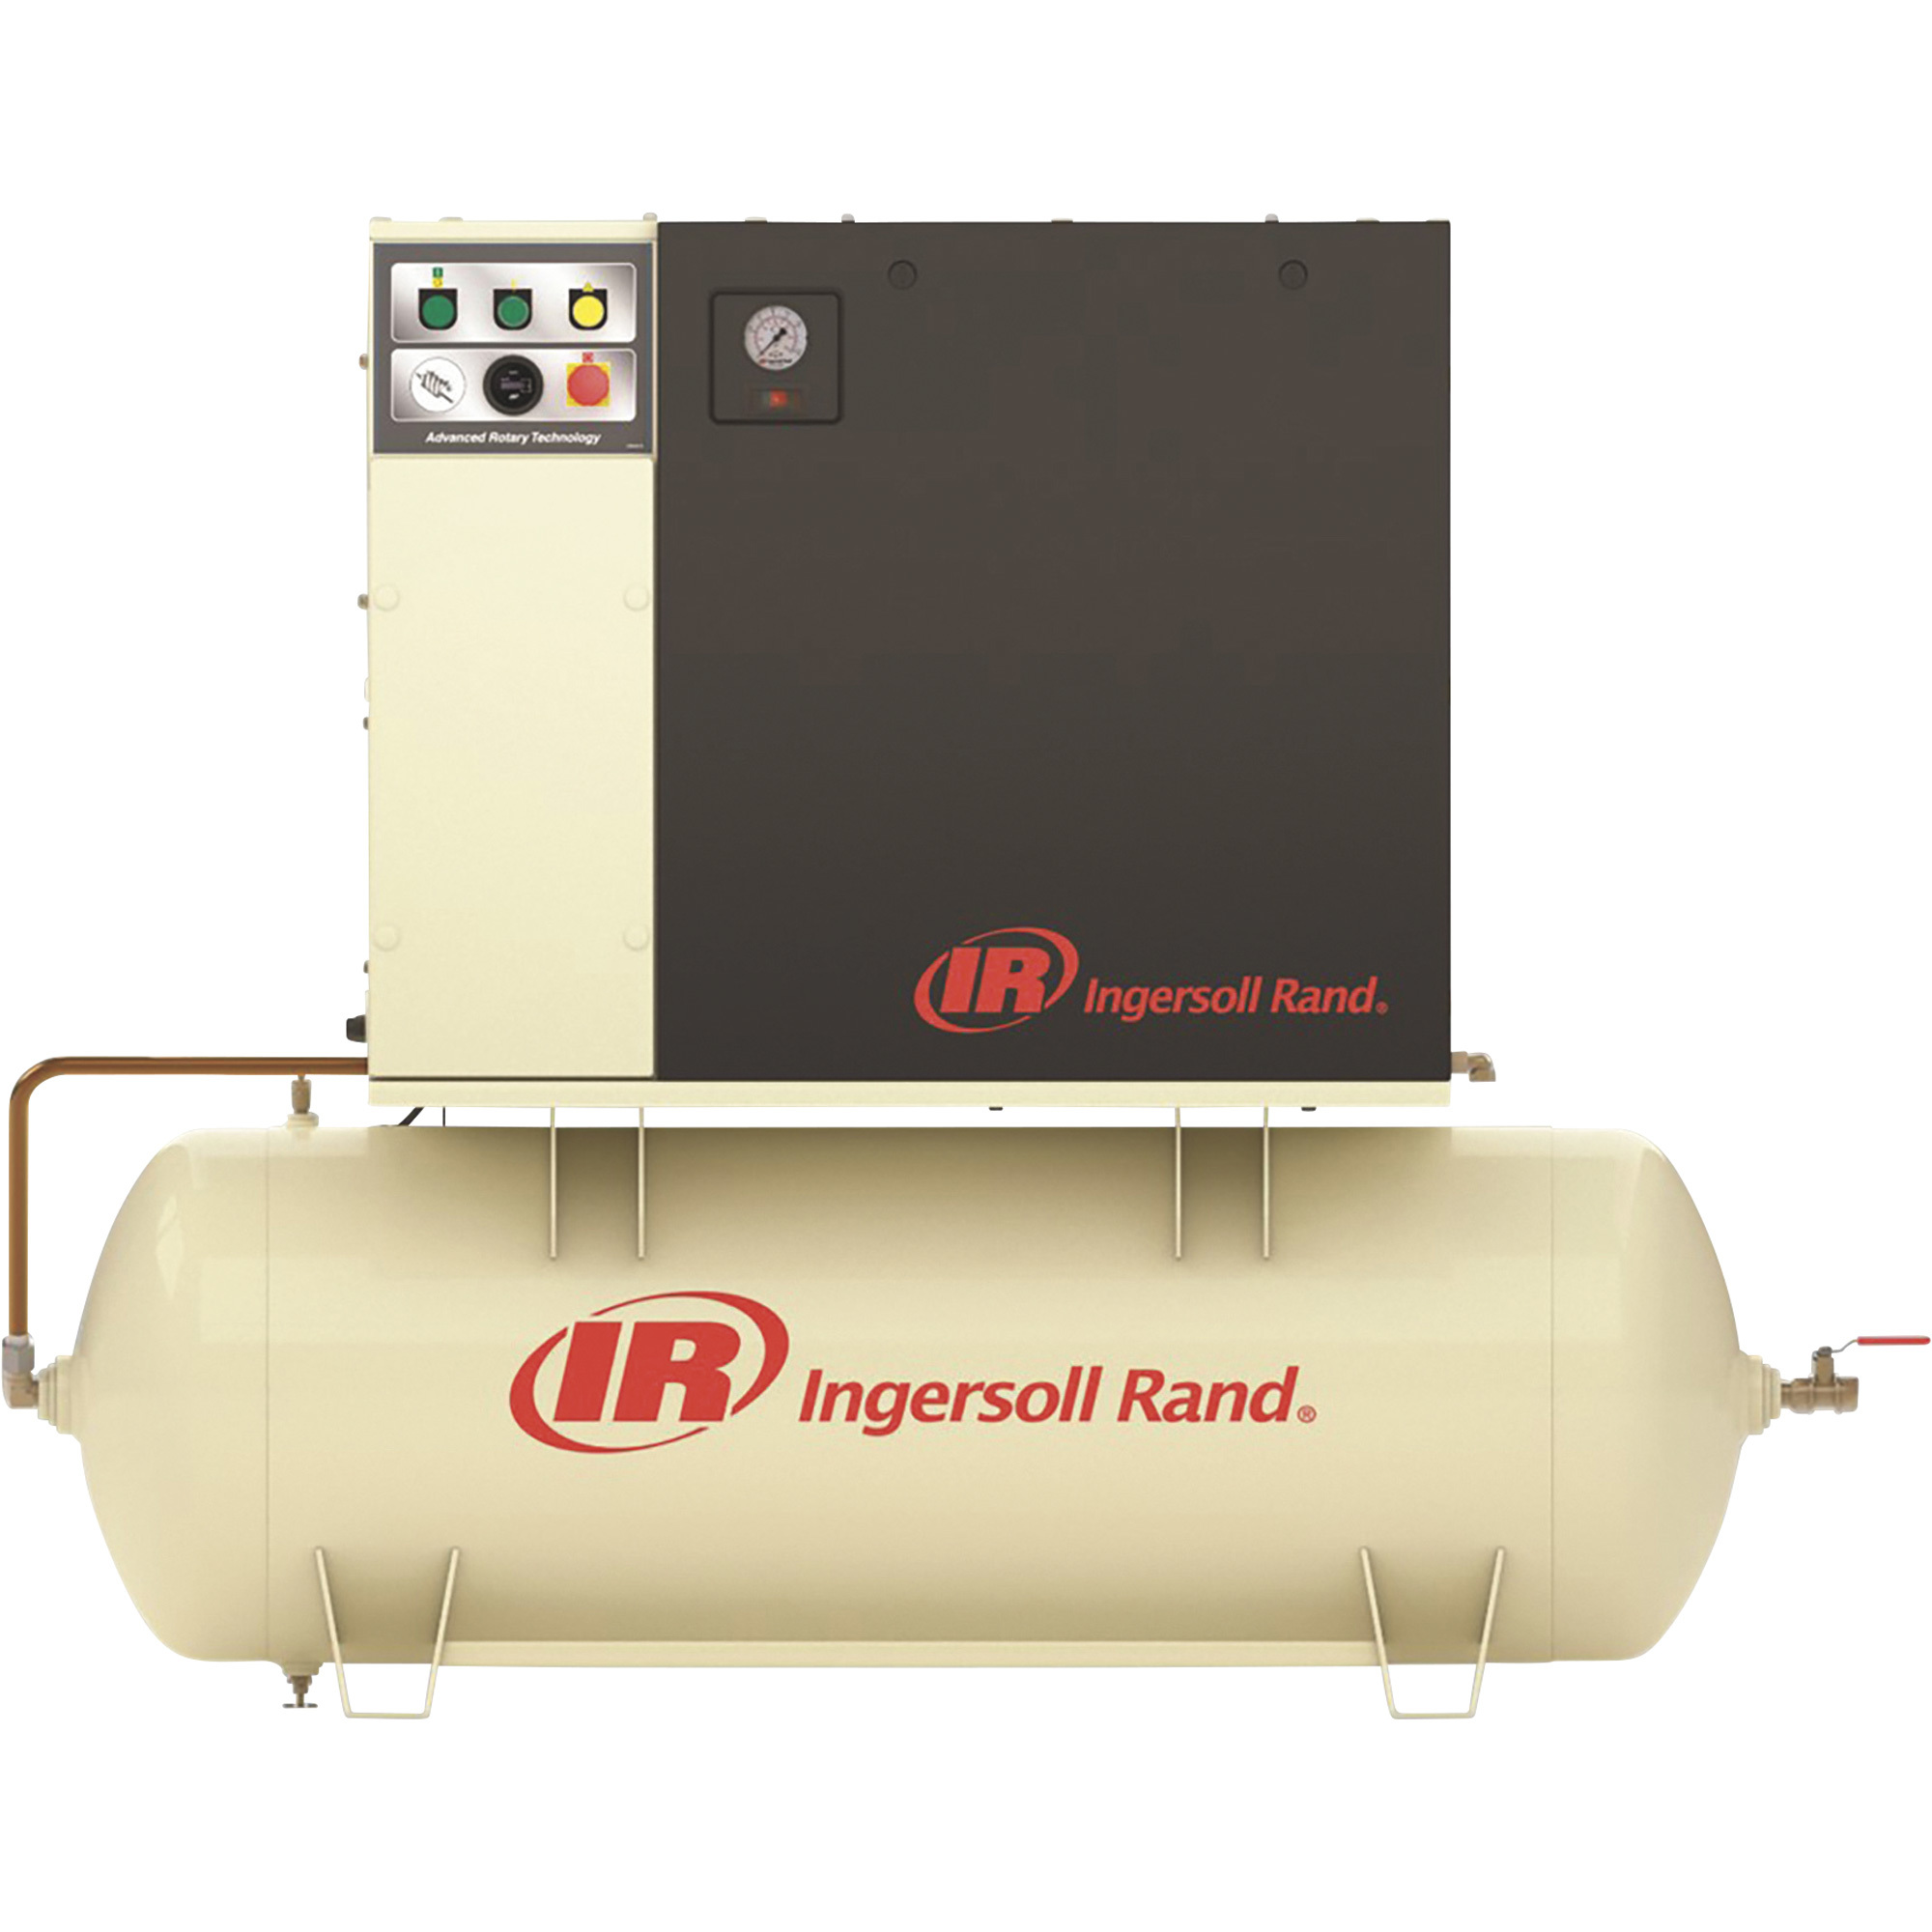 Ingersoll Rand Rotary Screw Compressor W Total Air System